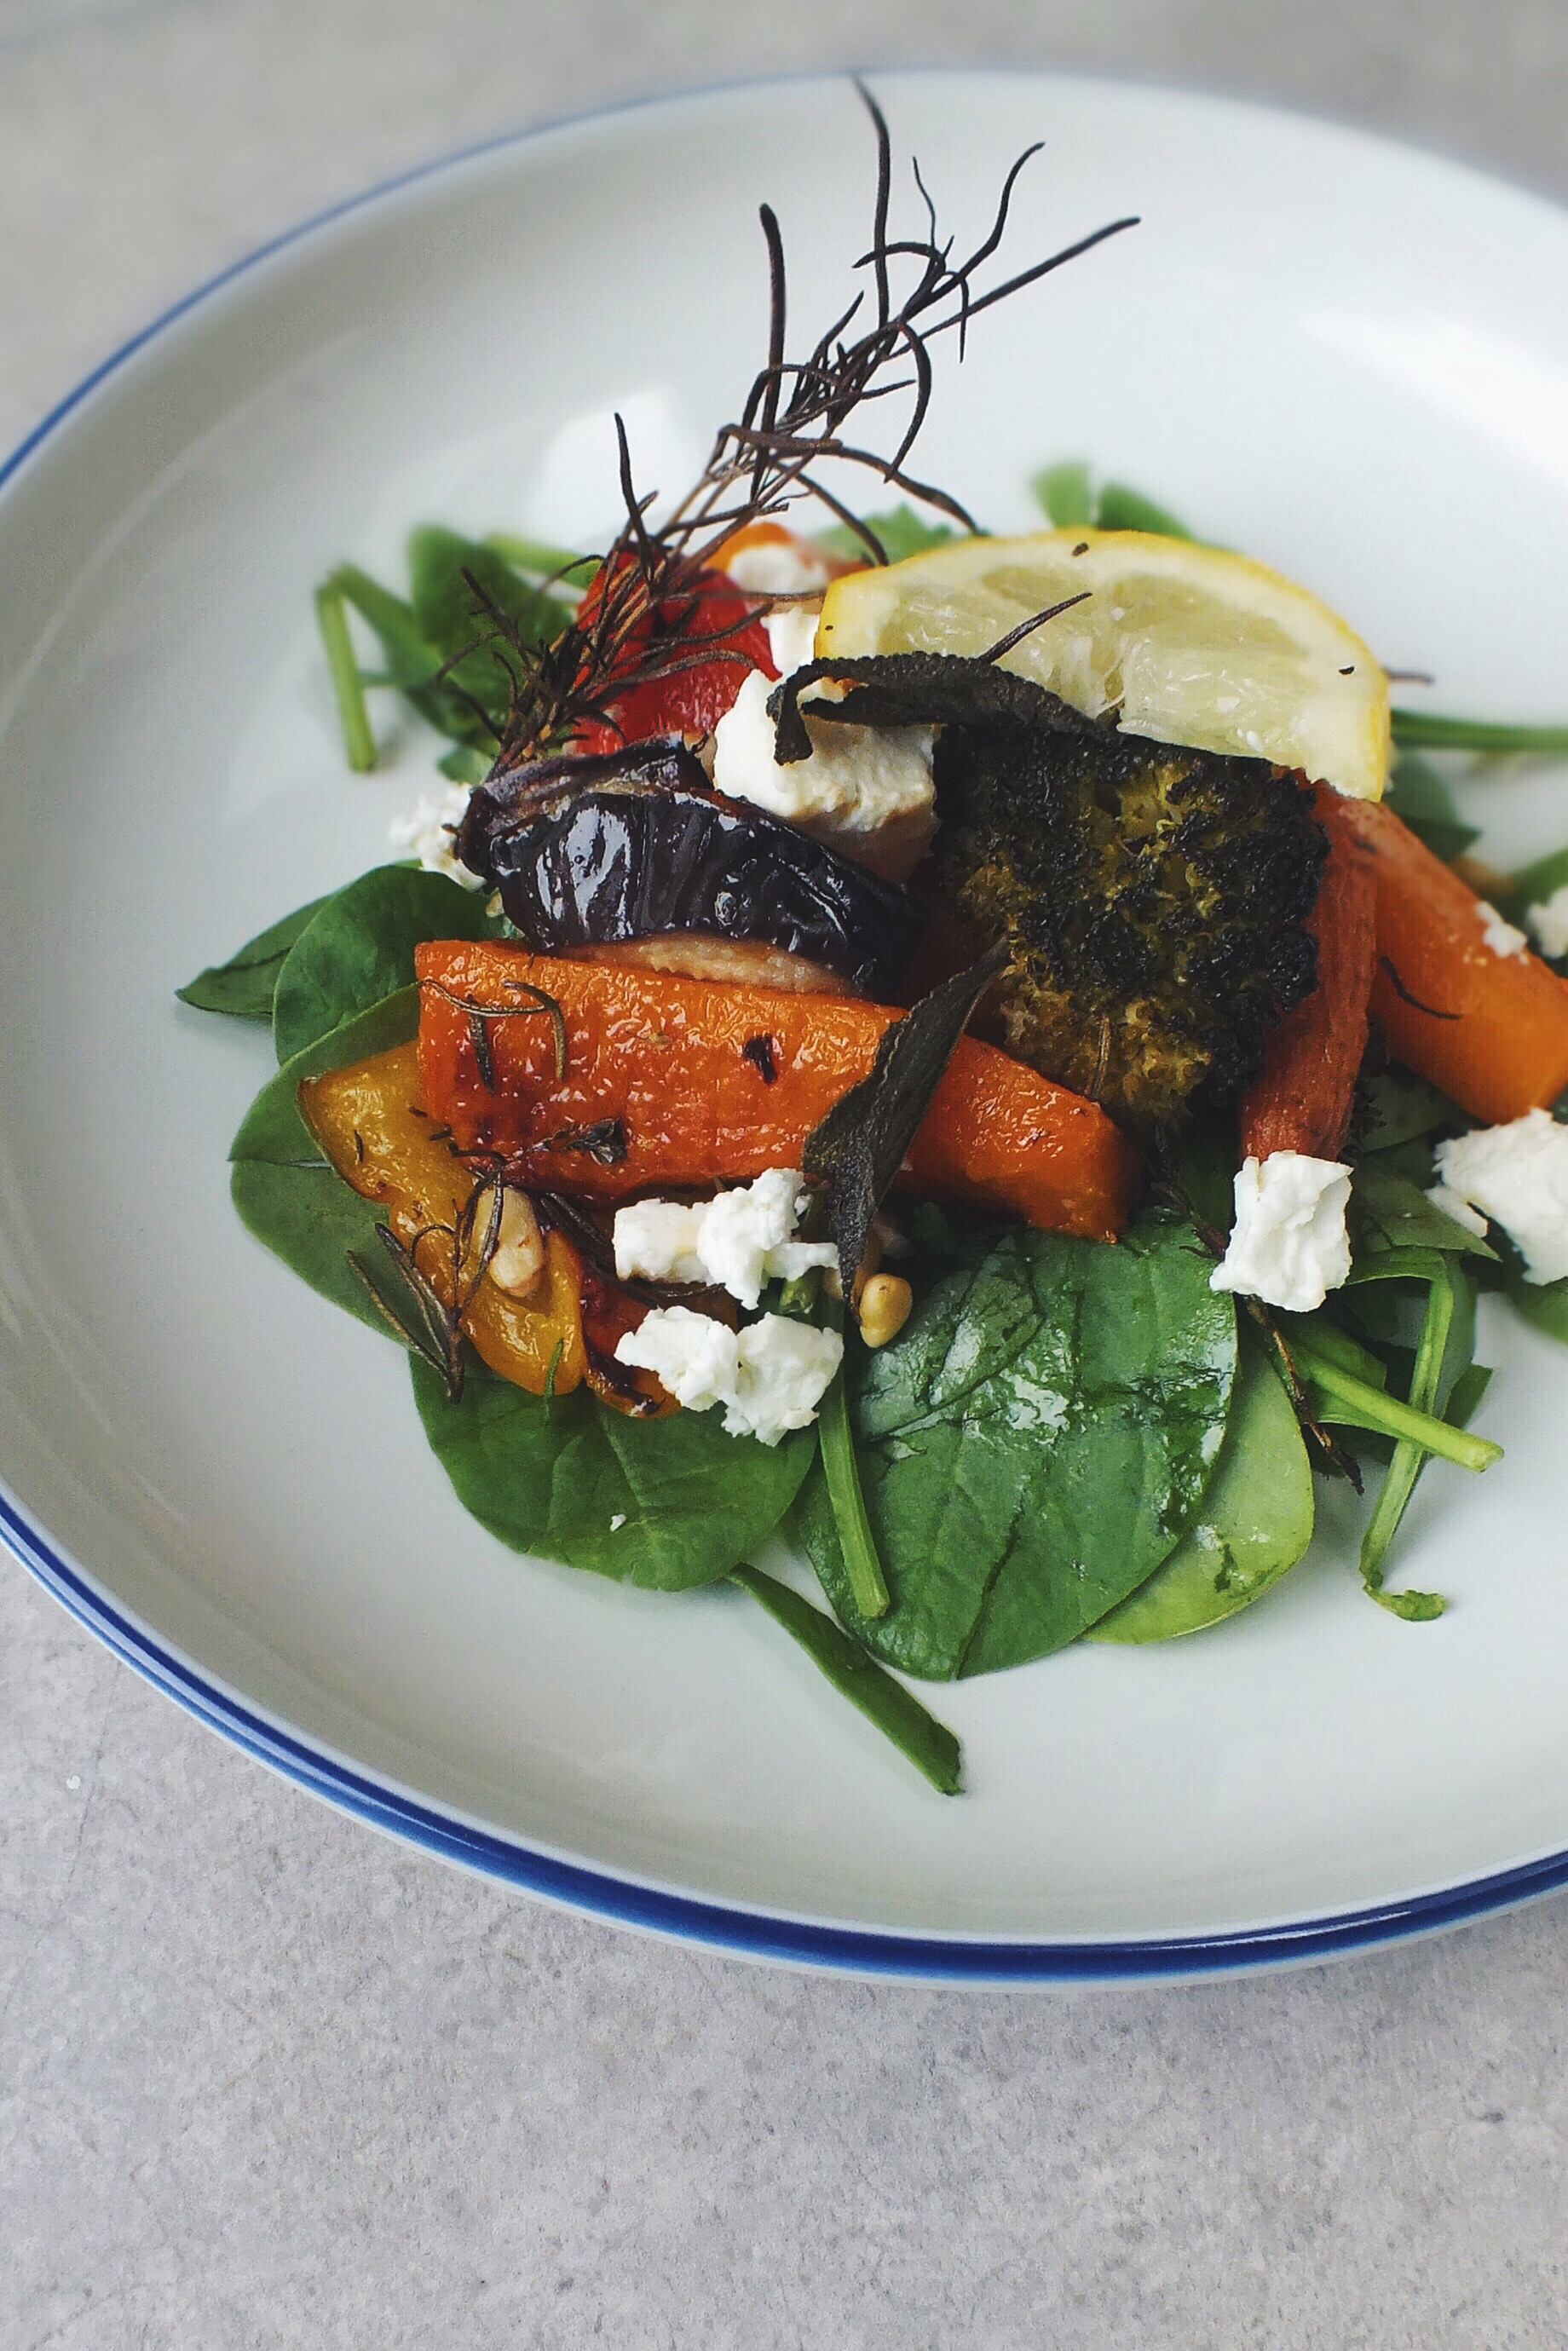 Low fodmap roasted vegetables with feta she can't eat what?!